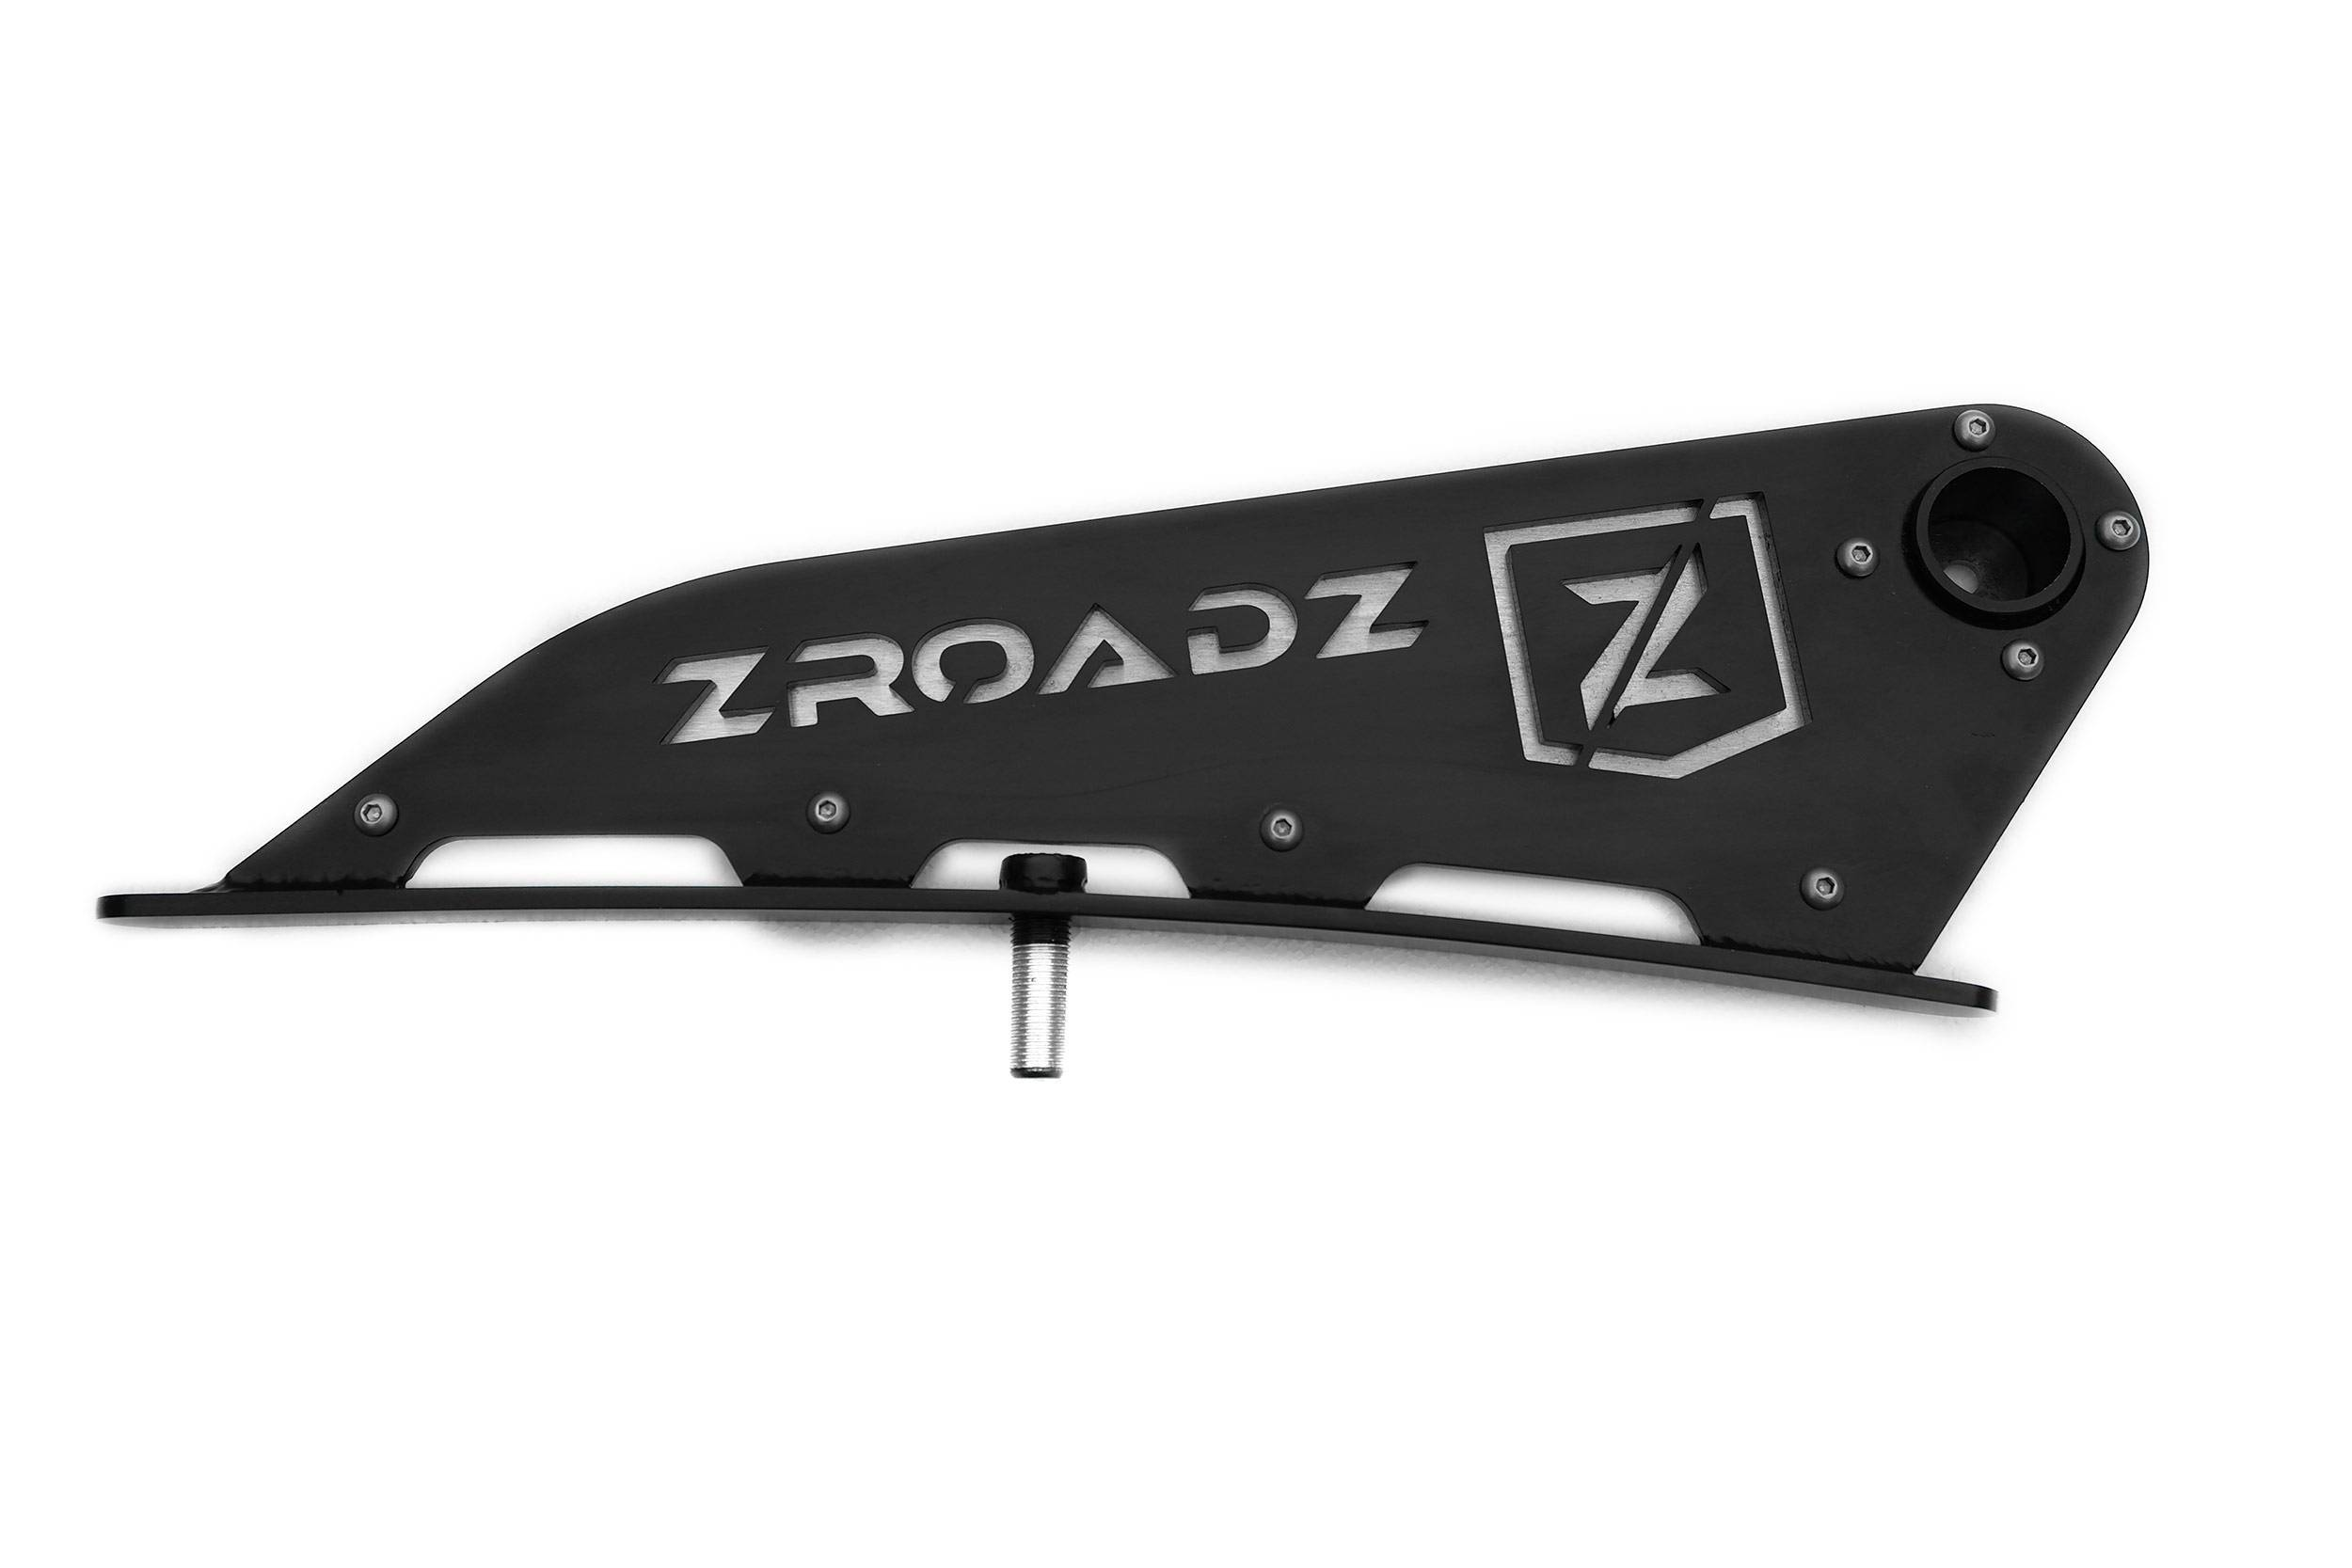 2015-2020 Chevrolet Colorado, GMC Canyon Front Roof LED Brackets to mount 40 Inch Staight LED Light Bar - Z332171